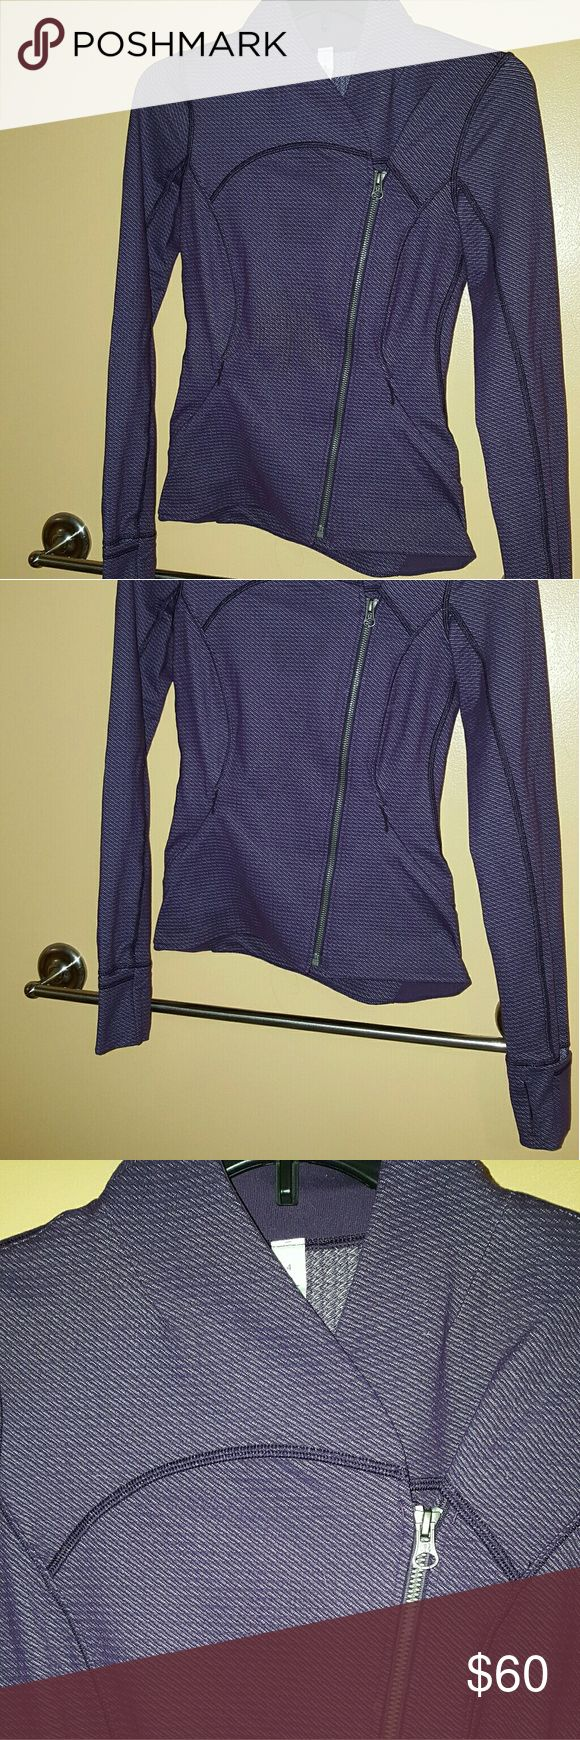 Lululemon Precision Jacket size 4 Lululemon Precision Jacket in size 4. Color deep zinfandel. Purchased from another clothing app NWT and only worn 2-3 times! lululemon athletica Jackets & Coats